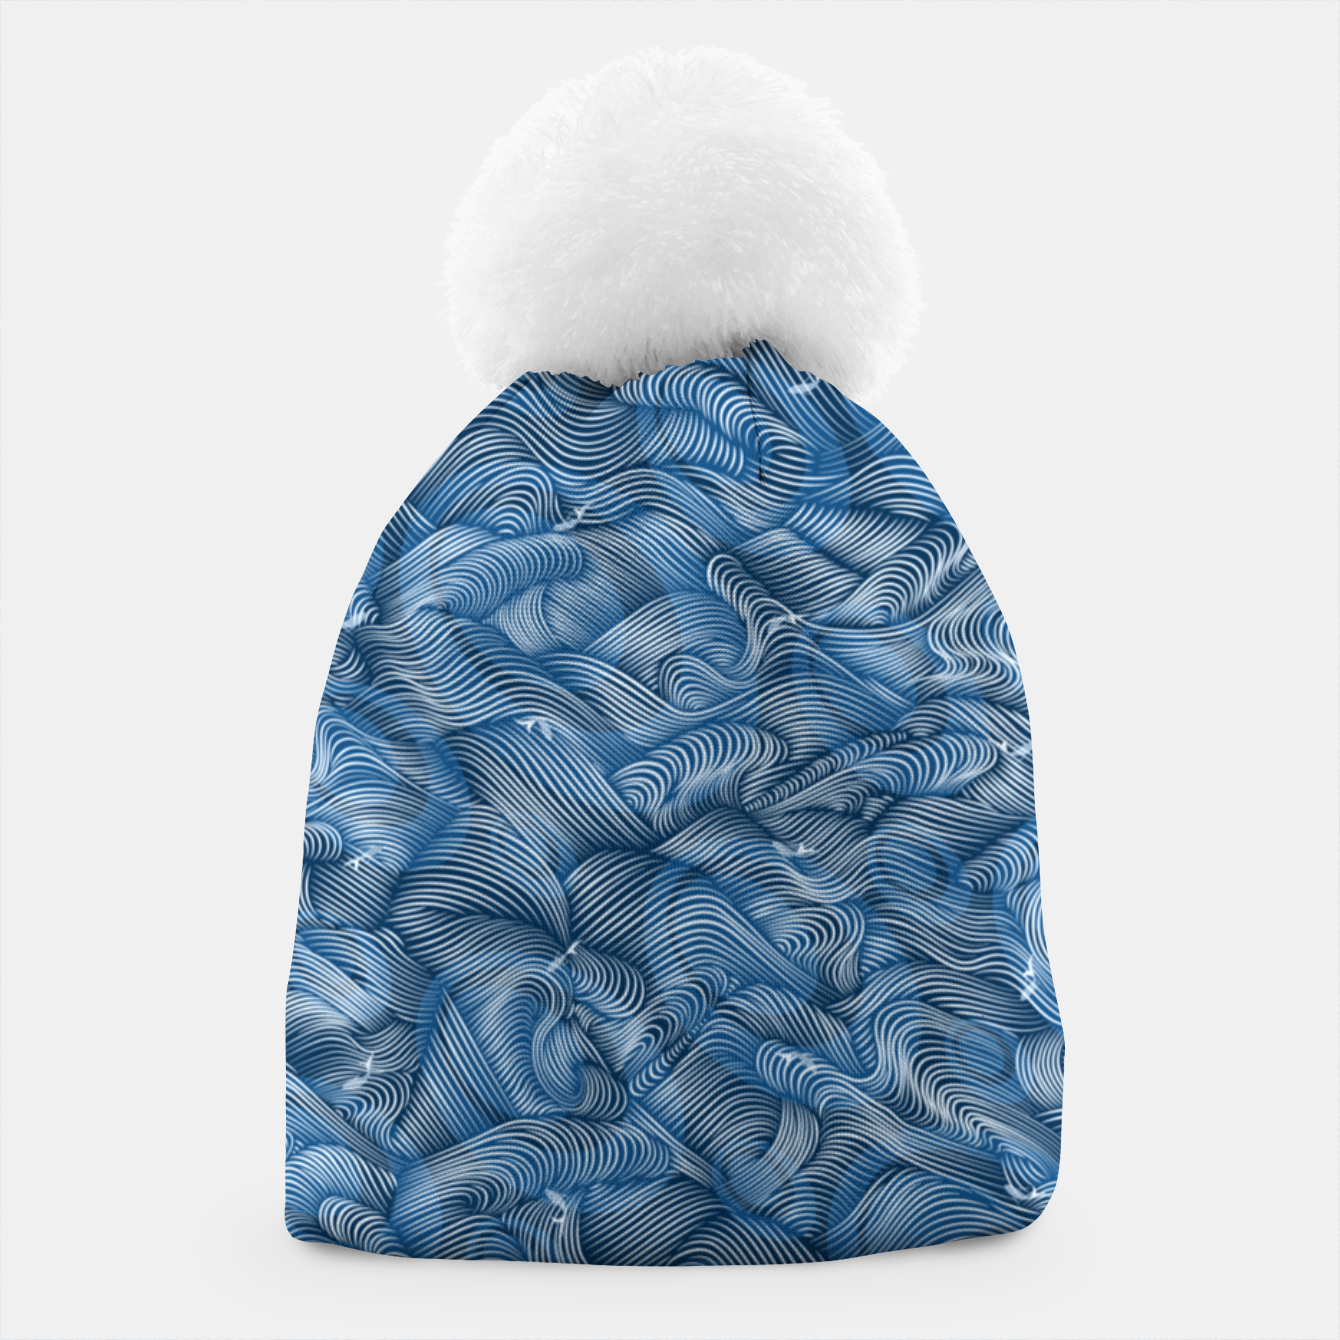 Foto Slippery Fishes Floating in the Classic Blue Waves Beanie - Live Heroes